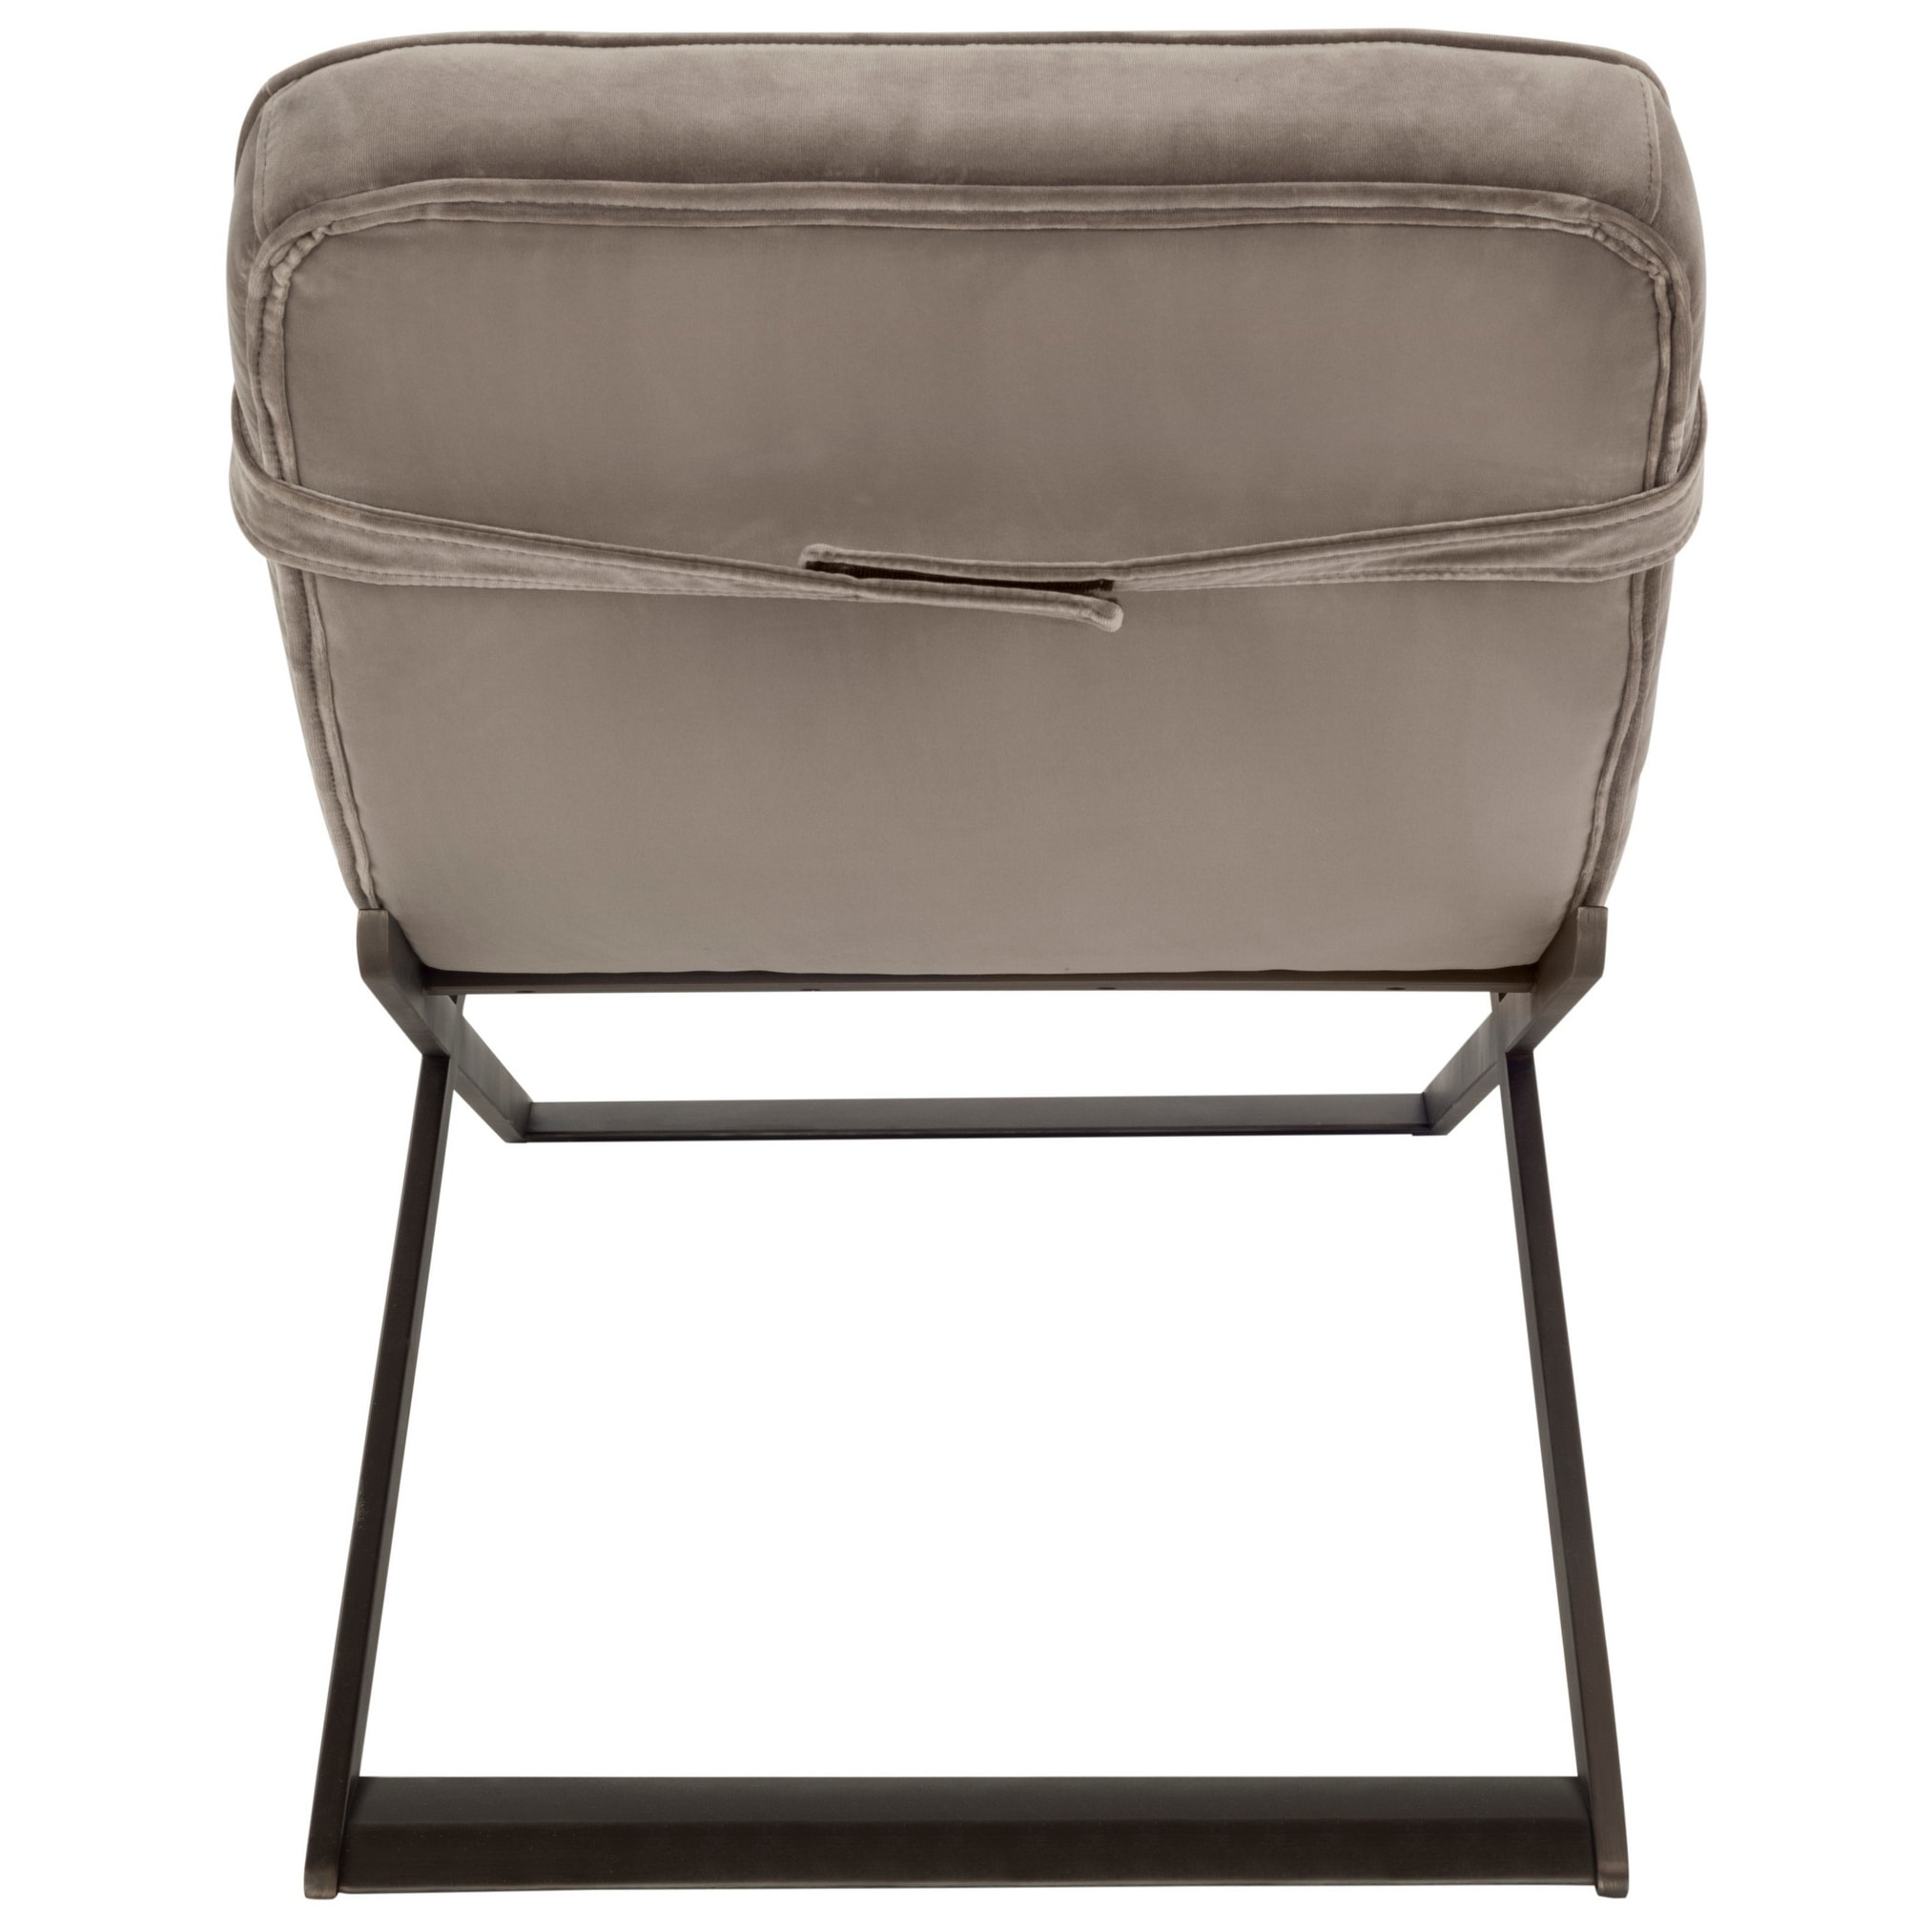 Shop Safavieh Couture Mandalay Taupe Bronze Velvet Stainless Steel Chaise